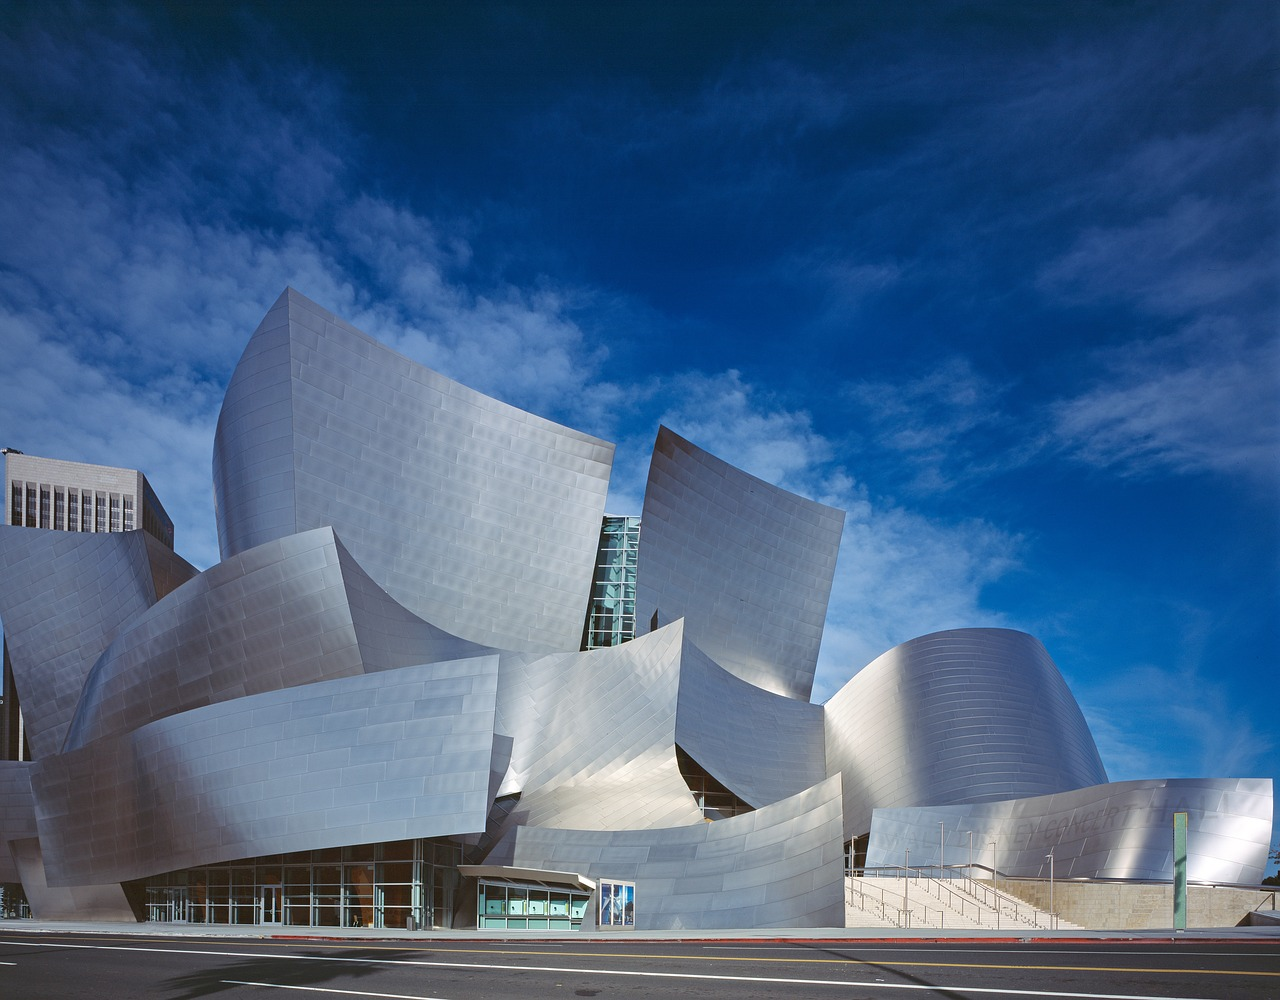 the LA Philharmonic has been a leader in connecting with new audiences